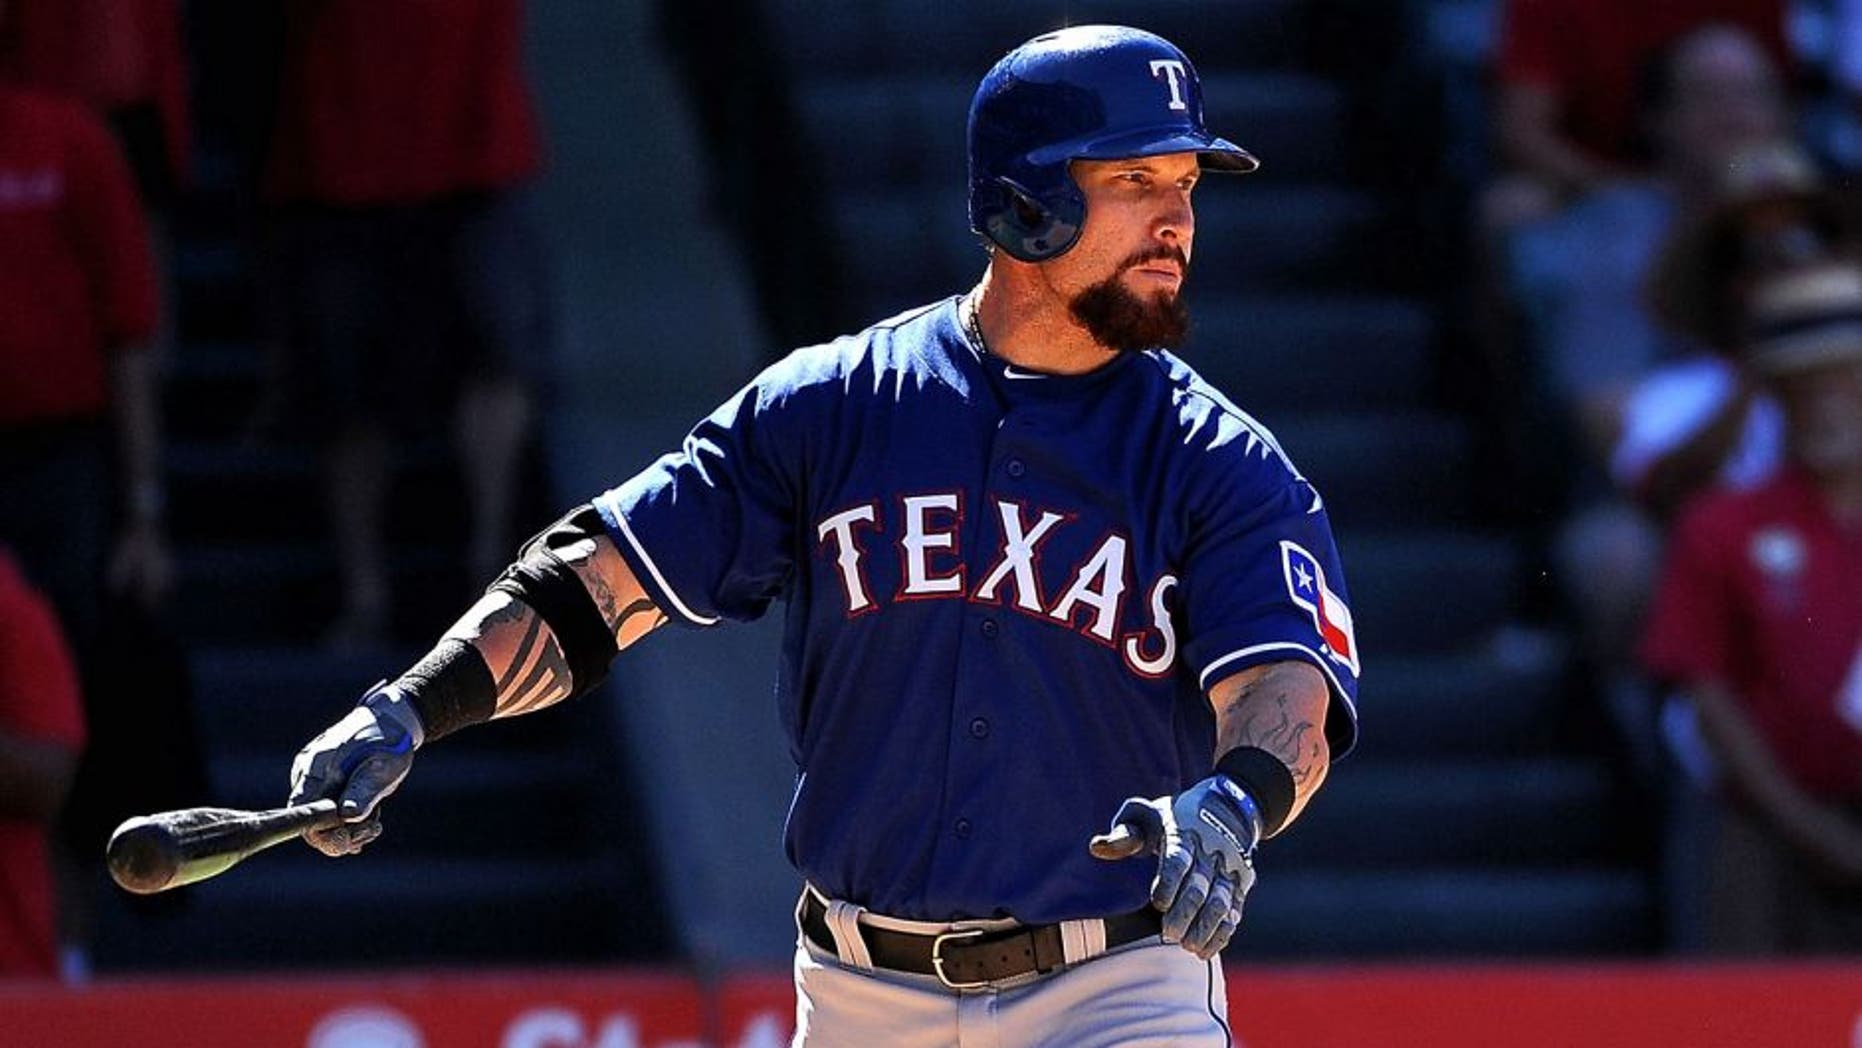 ANAHEIM, CA - JULY 26: Josh Hamilton #32 of the Texas Rangers bats during a game against the Los Angeles Angels of Anaheim at Angel Stadium of Anaheim on July 26, 2015 in Anaheim, California. (Photo by Jonathan Moore/Getty Images)